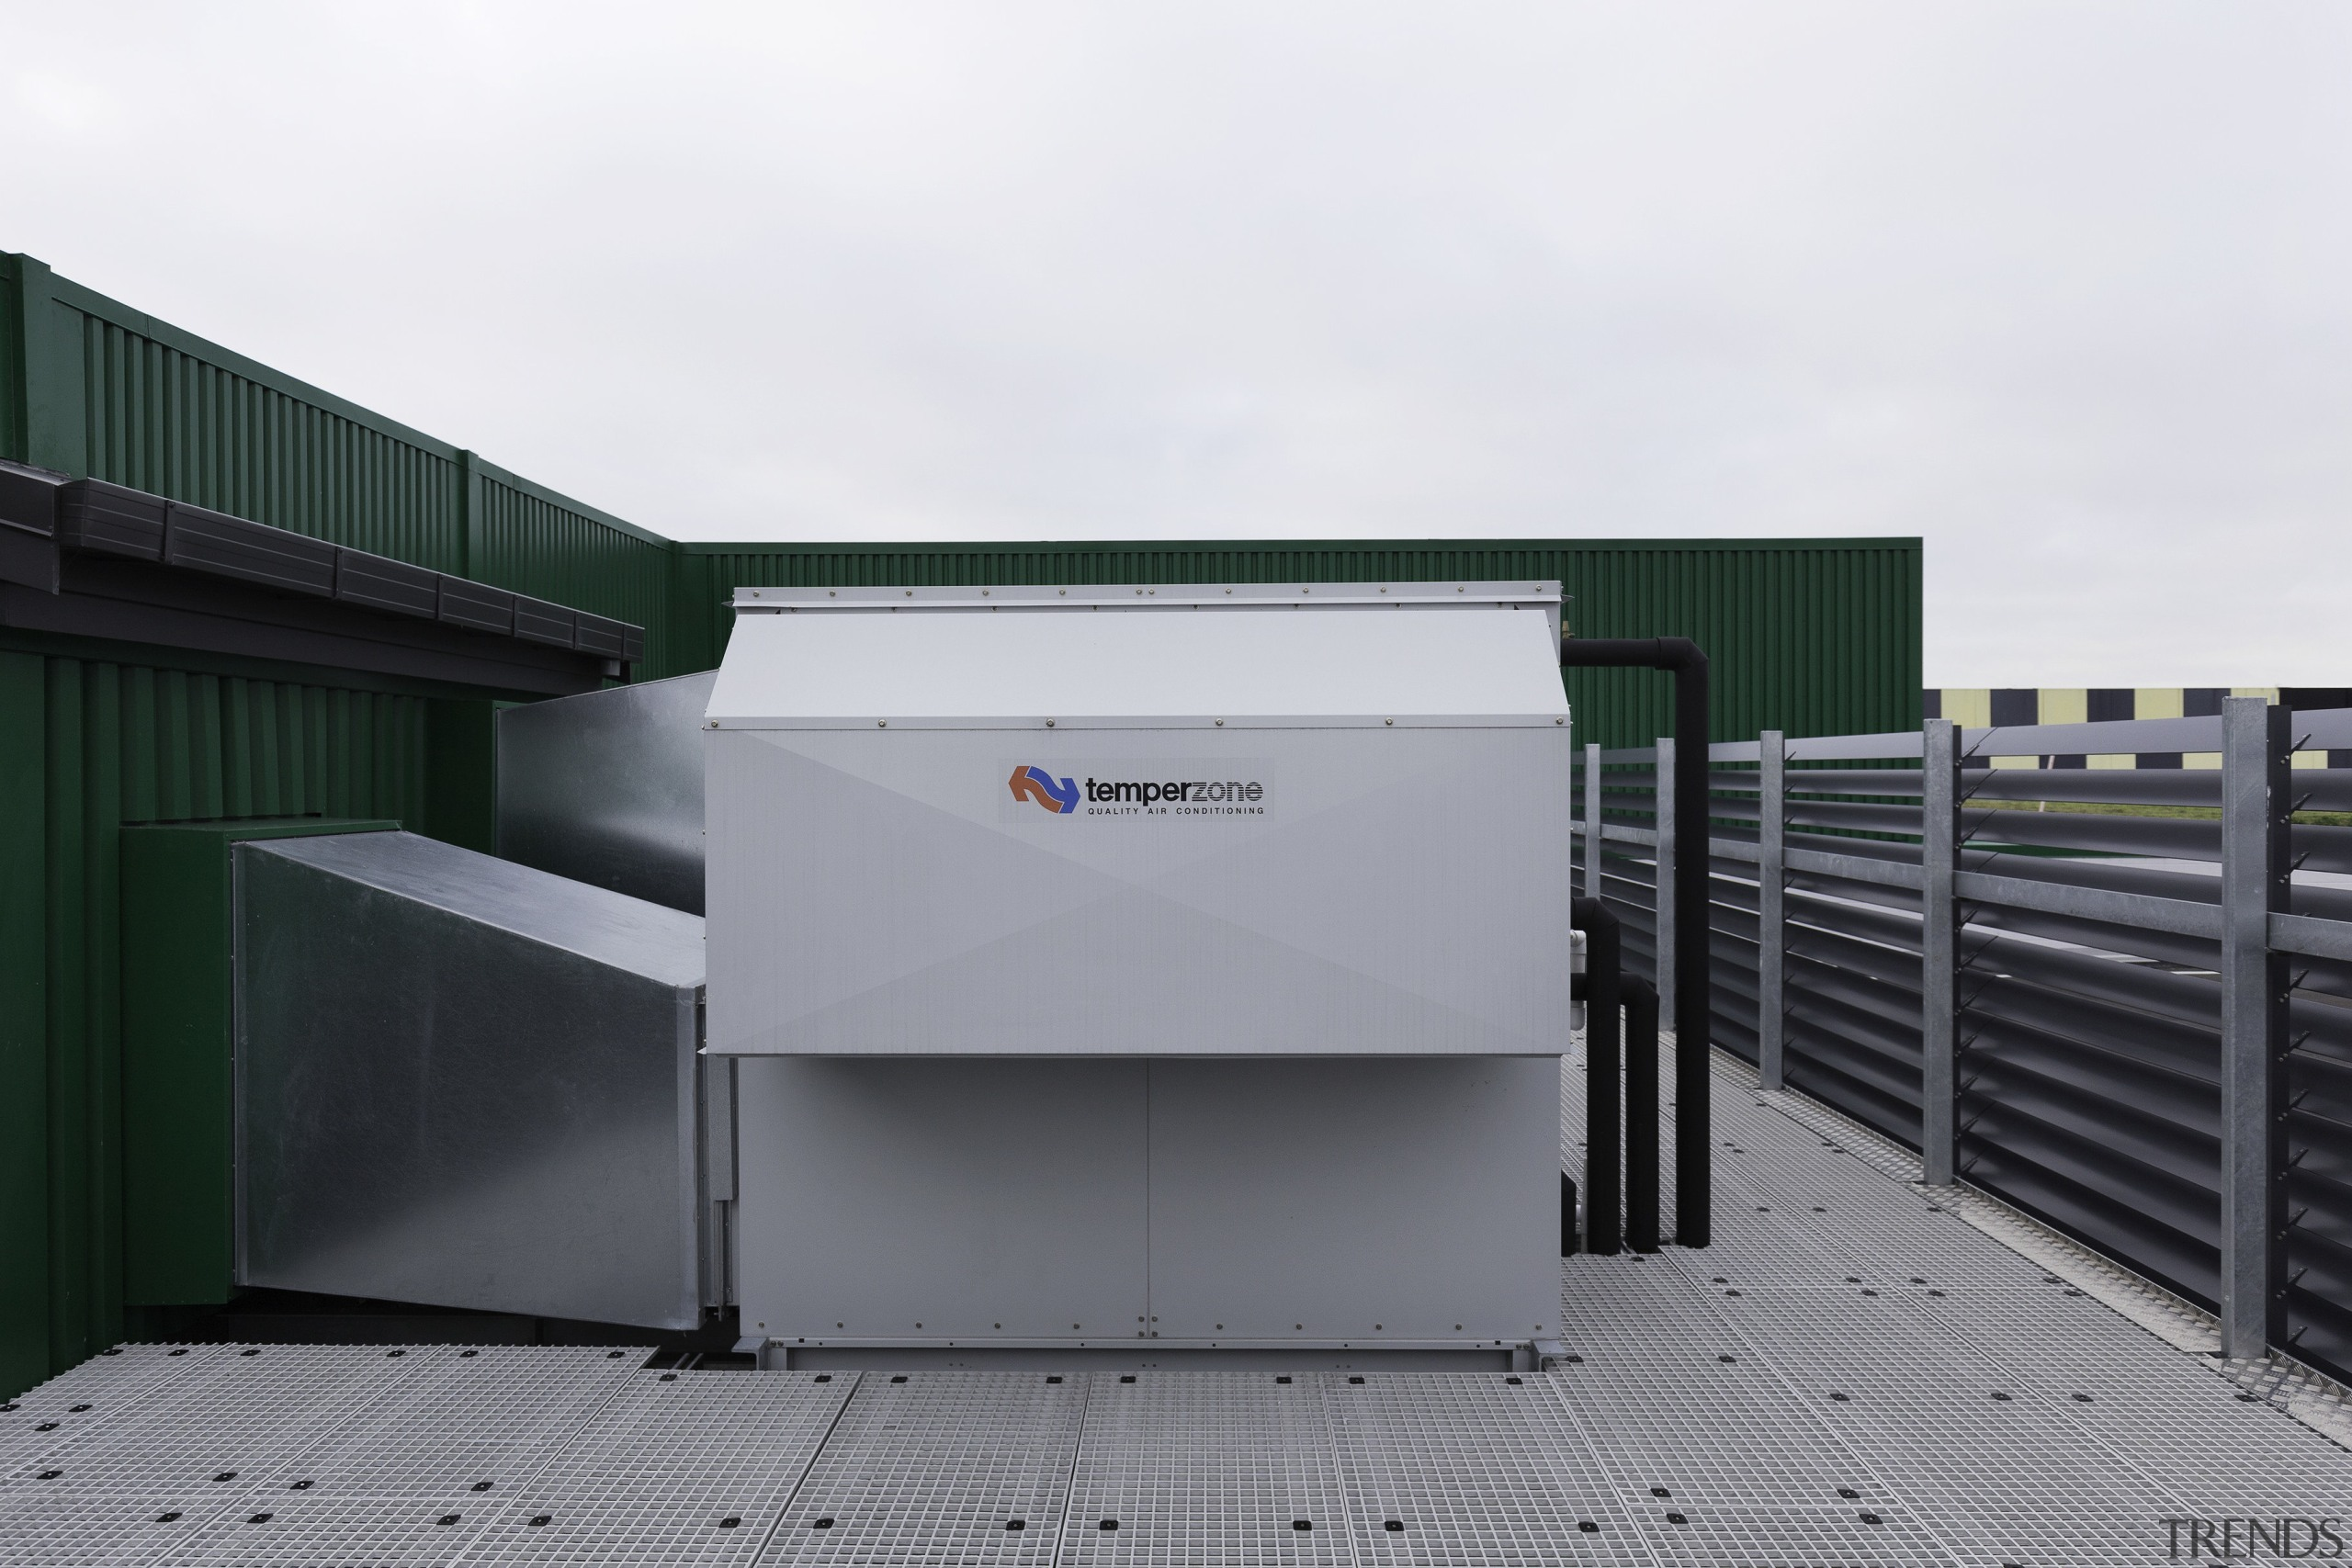 Custom air conditioning solutions were supplied for the architecture, facade, product, white